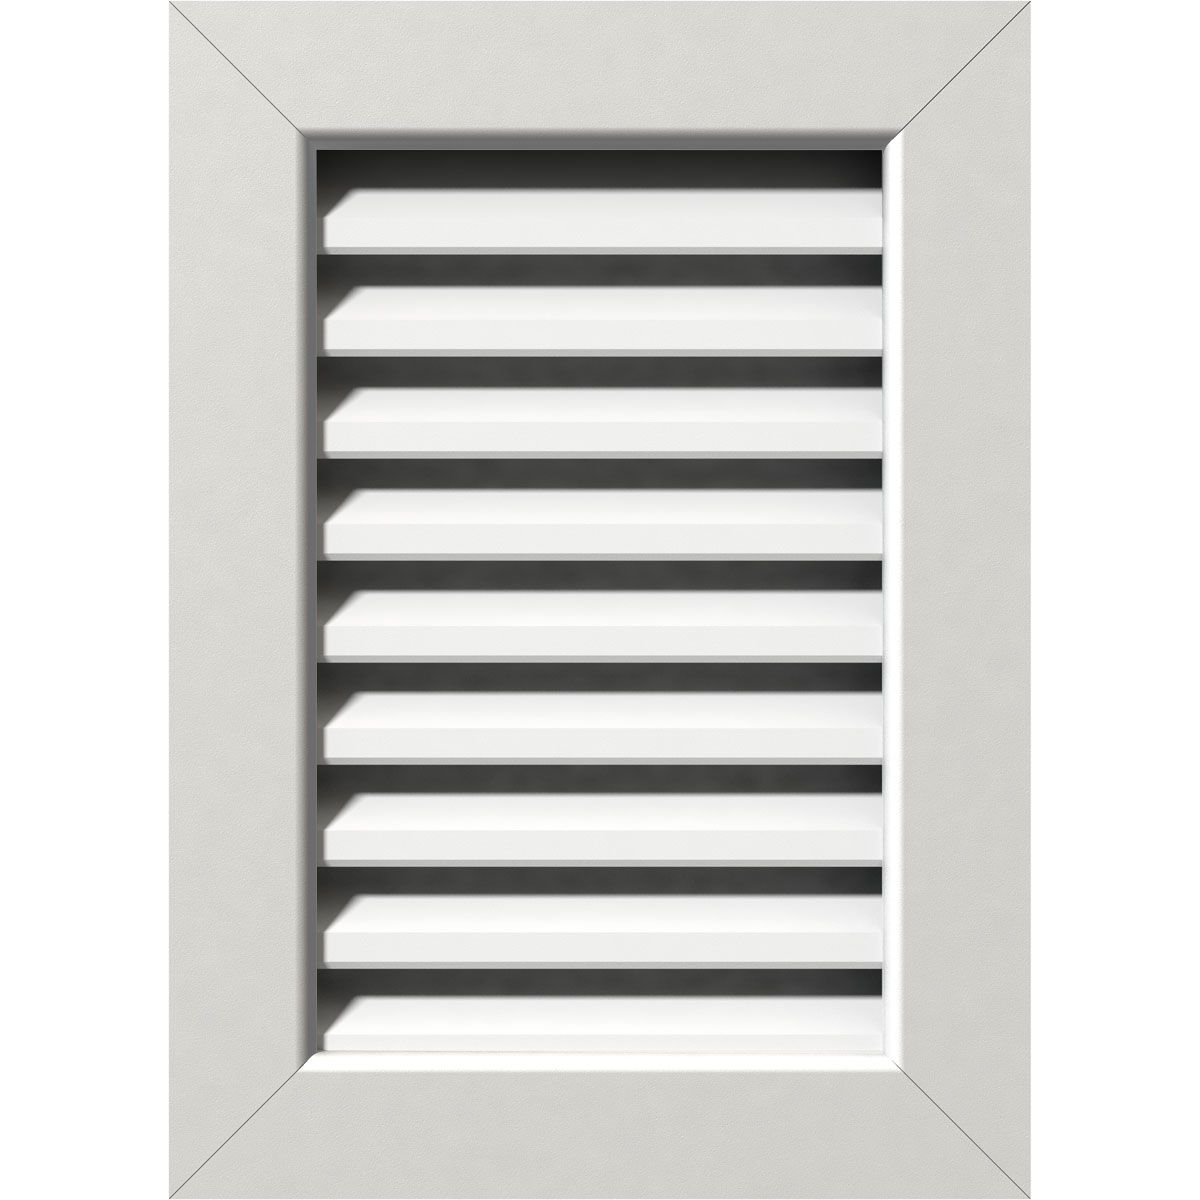 12 Inch W X 22 Inch H Vertical Gable Vent 17 Inch W X 27 Inch H Frame Size Functional Pvc Gable Vent W 1 Inch X 4 Inch Flat Trim Frame Gable Vents Ekena Millwork Frame